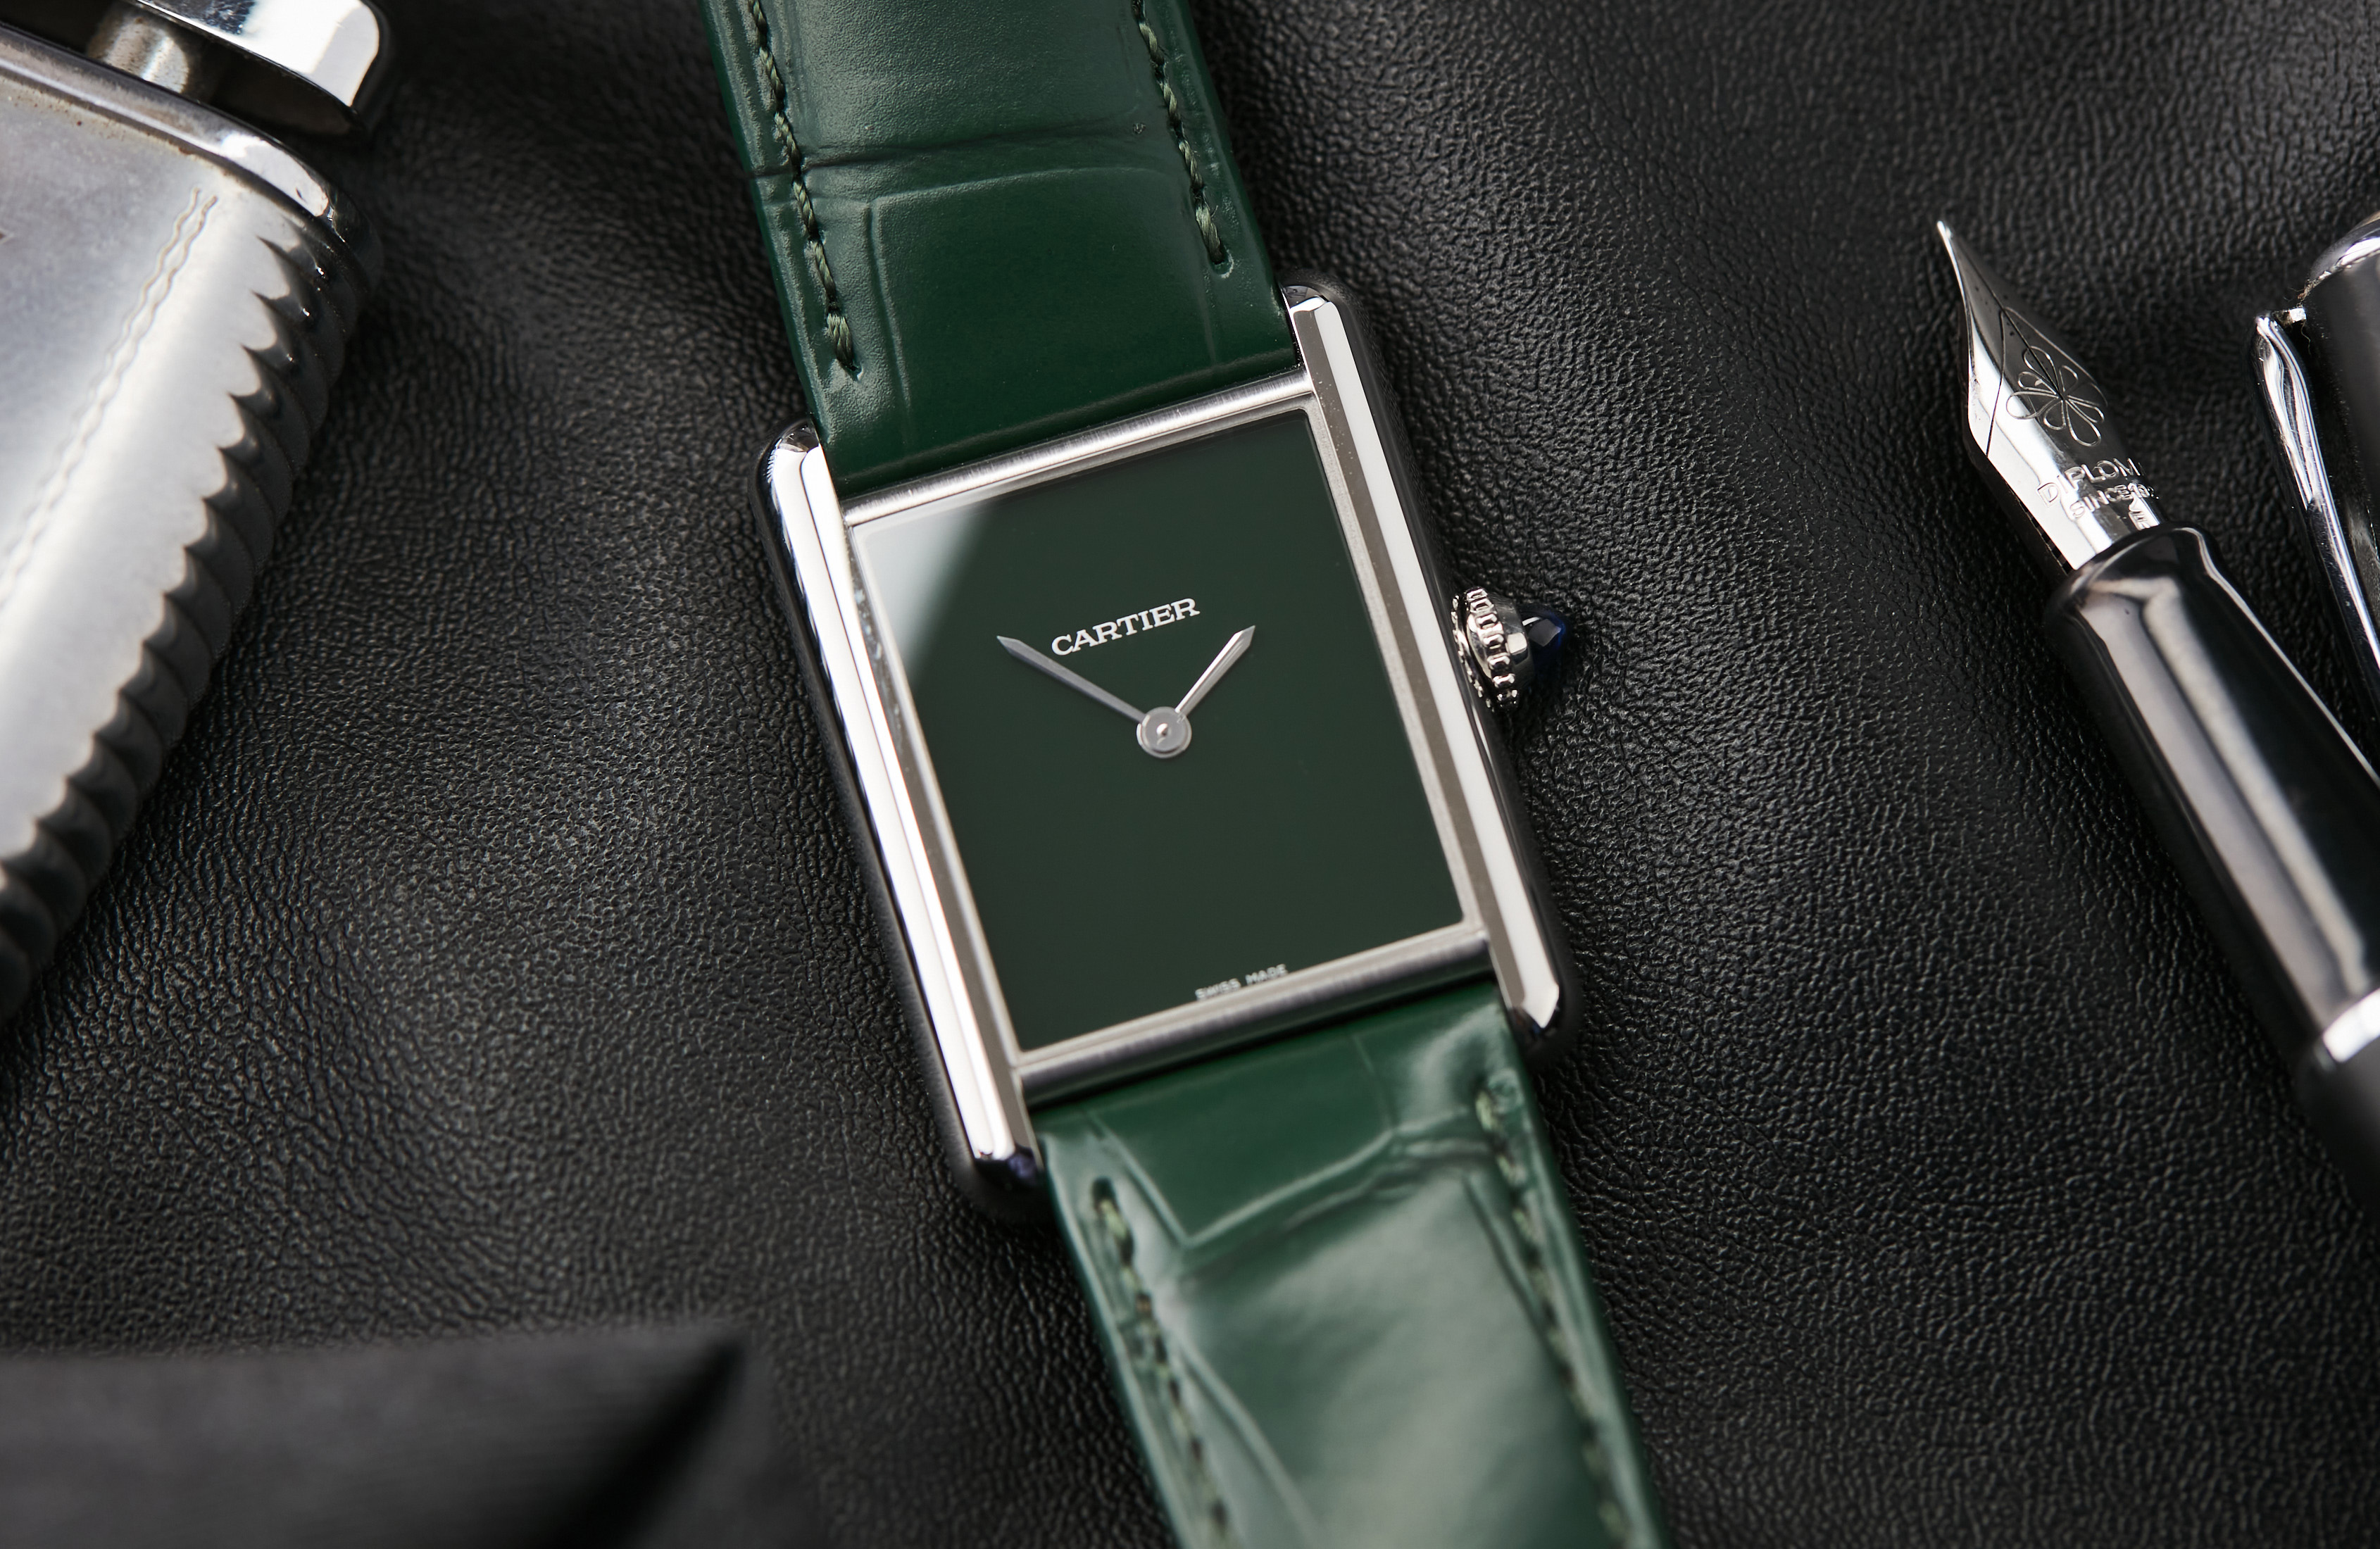 The best green dials of 2021 including IWC Cartier Grand Seiko 3380x2200